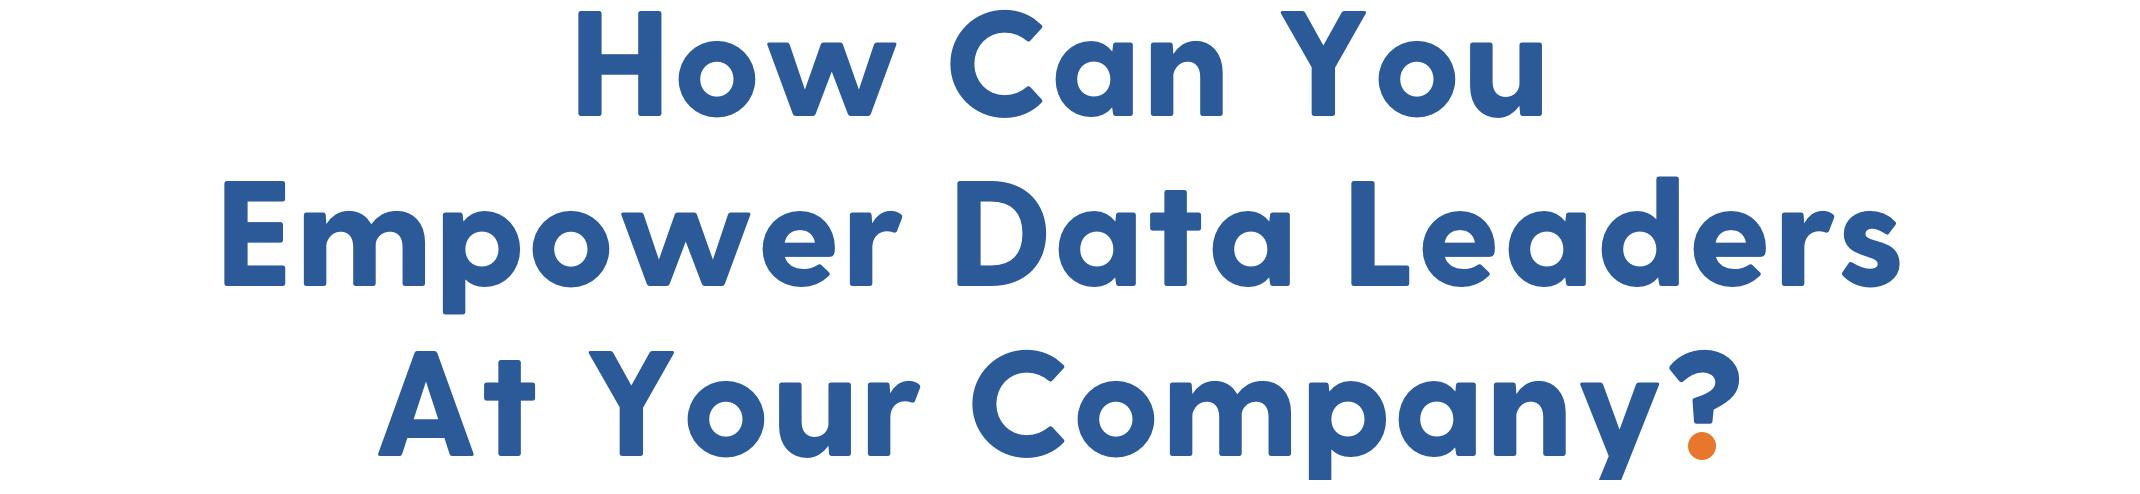 Section 01: How Can You Empower Data Leaders At Your Company?